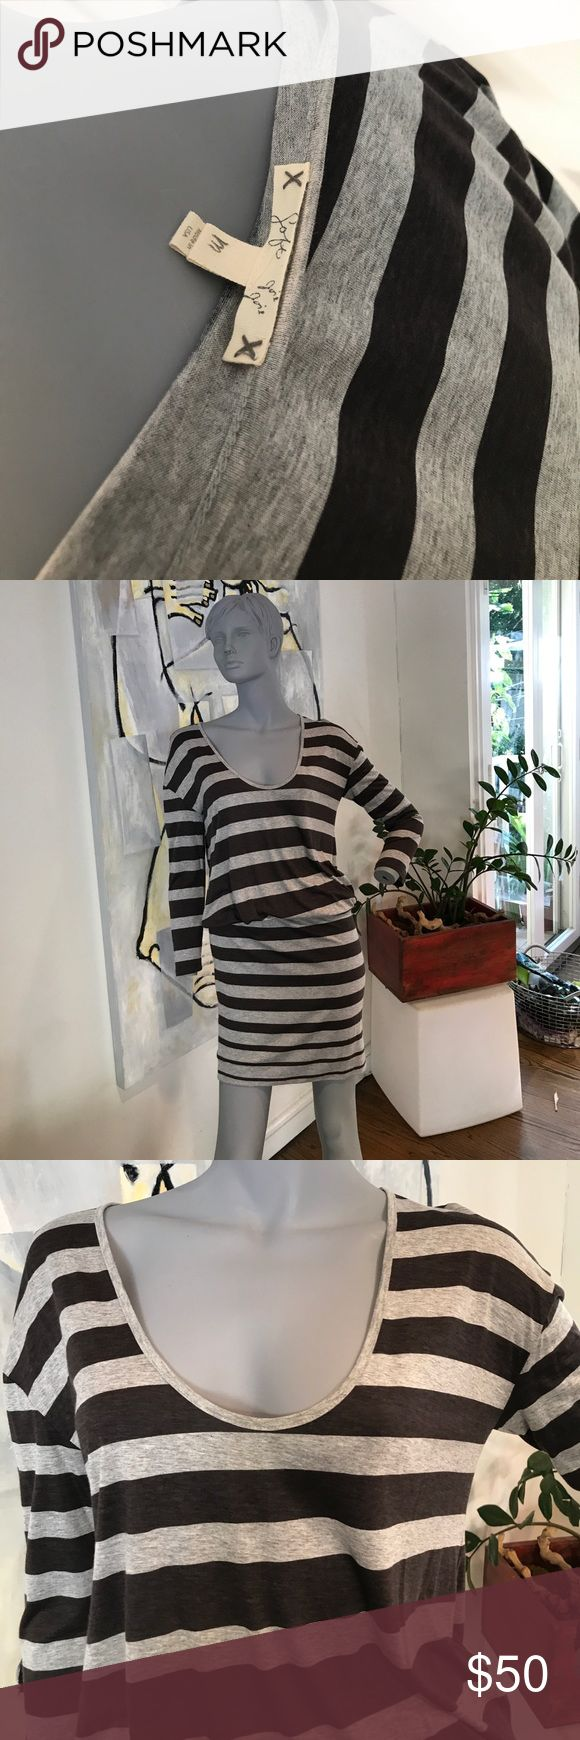 Soft Joie dress never been worn size m Grey and black stripe, 3/4 sleeve dress. Elastic at waist/hip to create blouson effect. Can be mini or a little longer. 100% rayon Soft Joie Dresses Mini